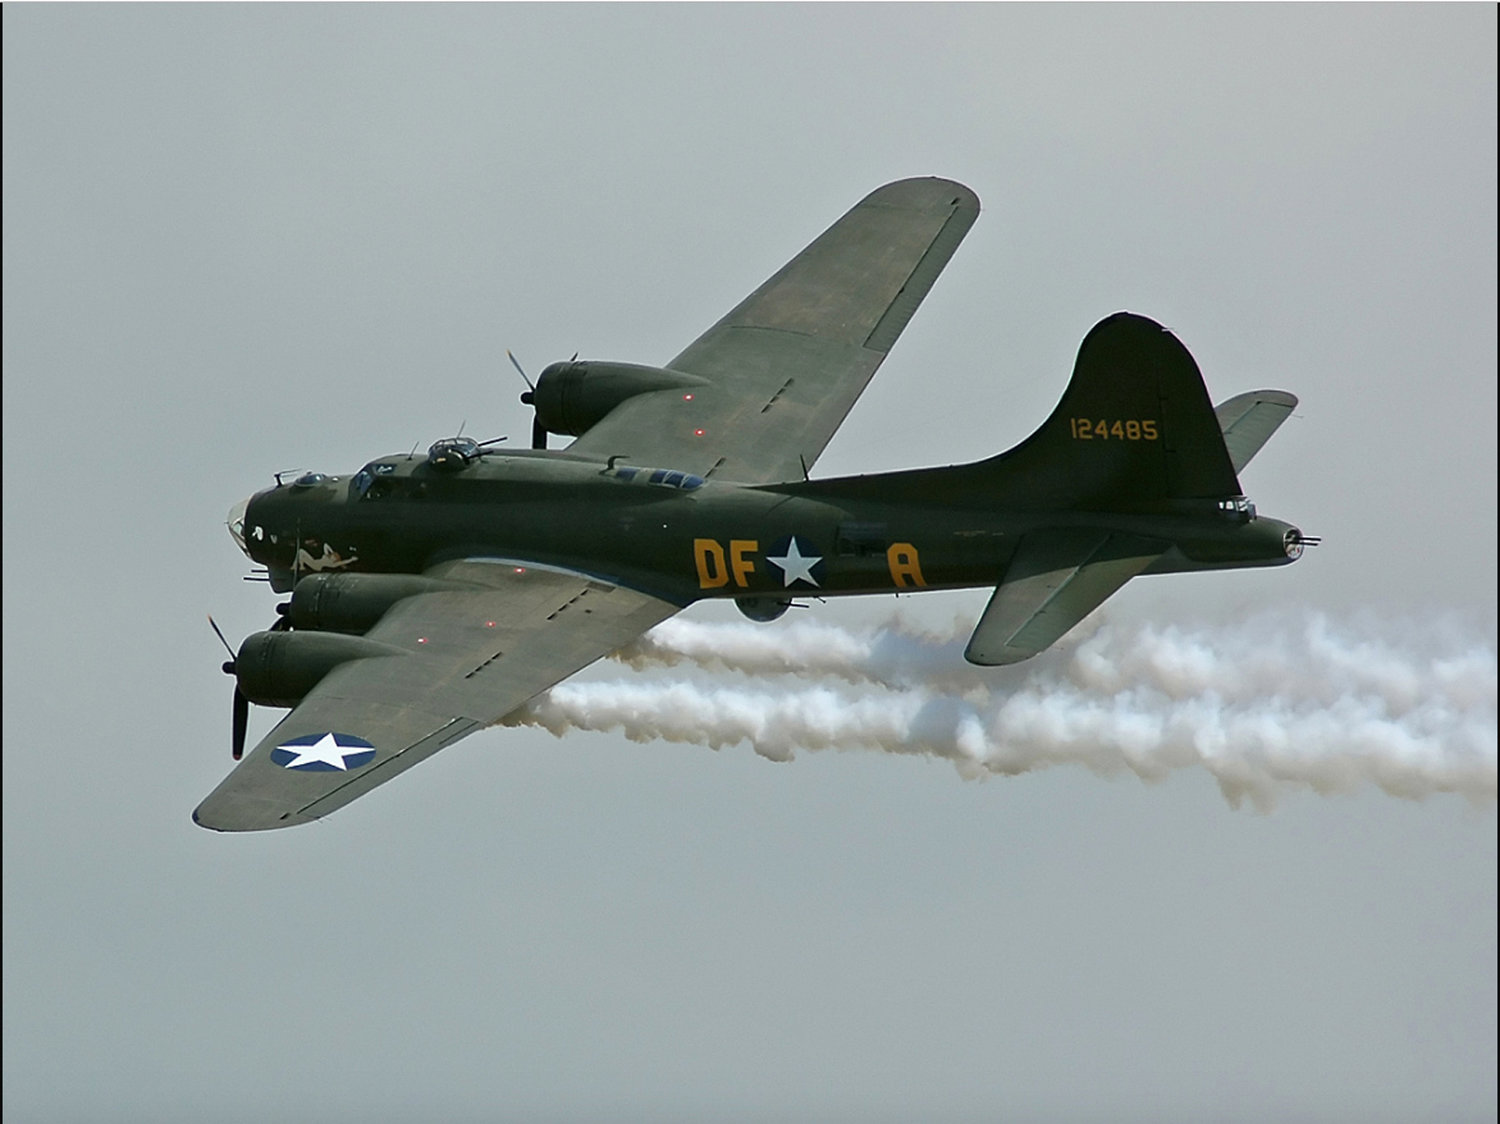 A B-17 Flying Fortress, like the one in which John Mctigue was shot down.